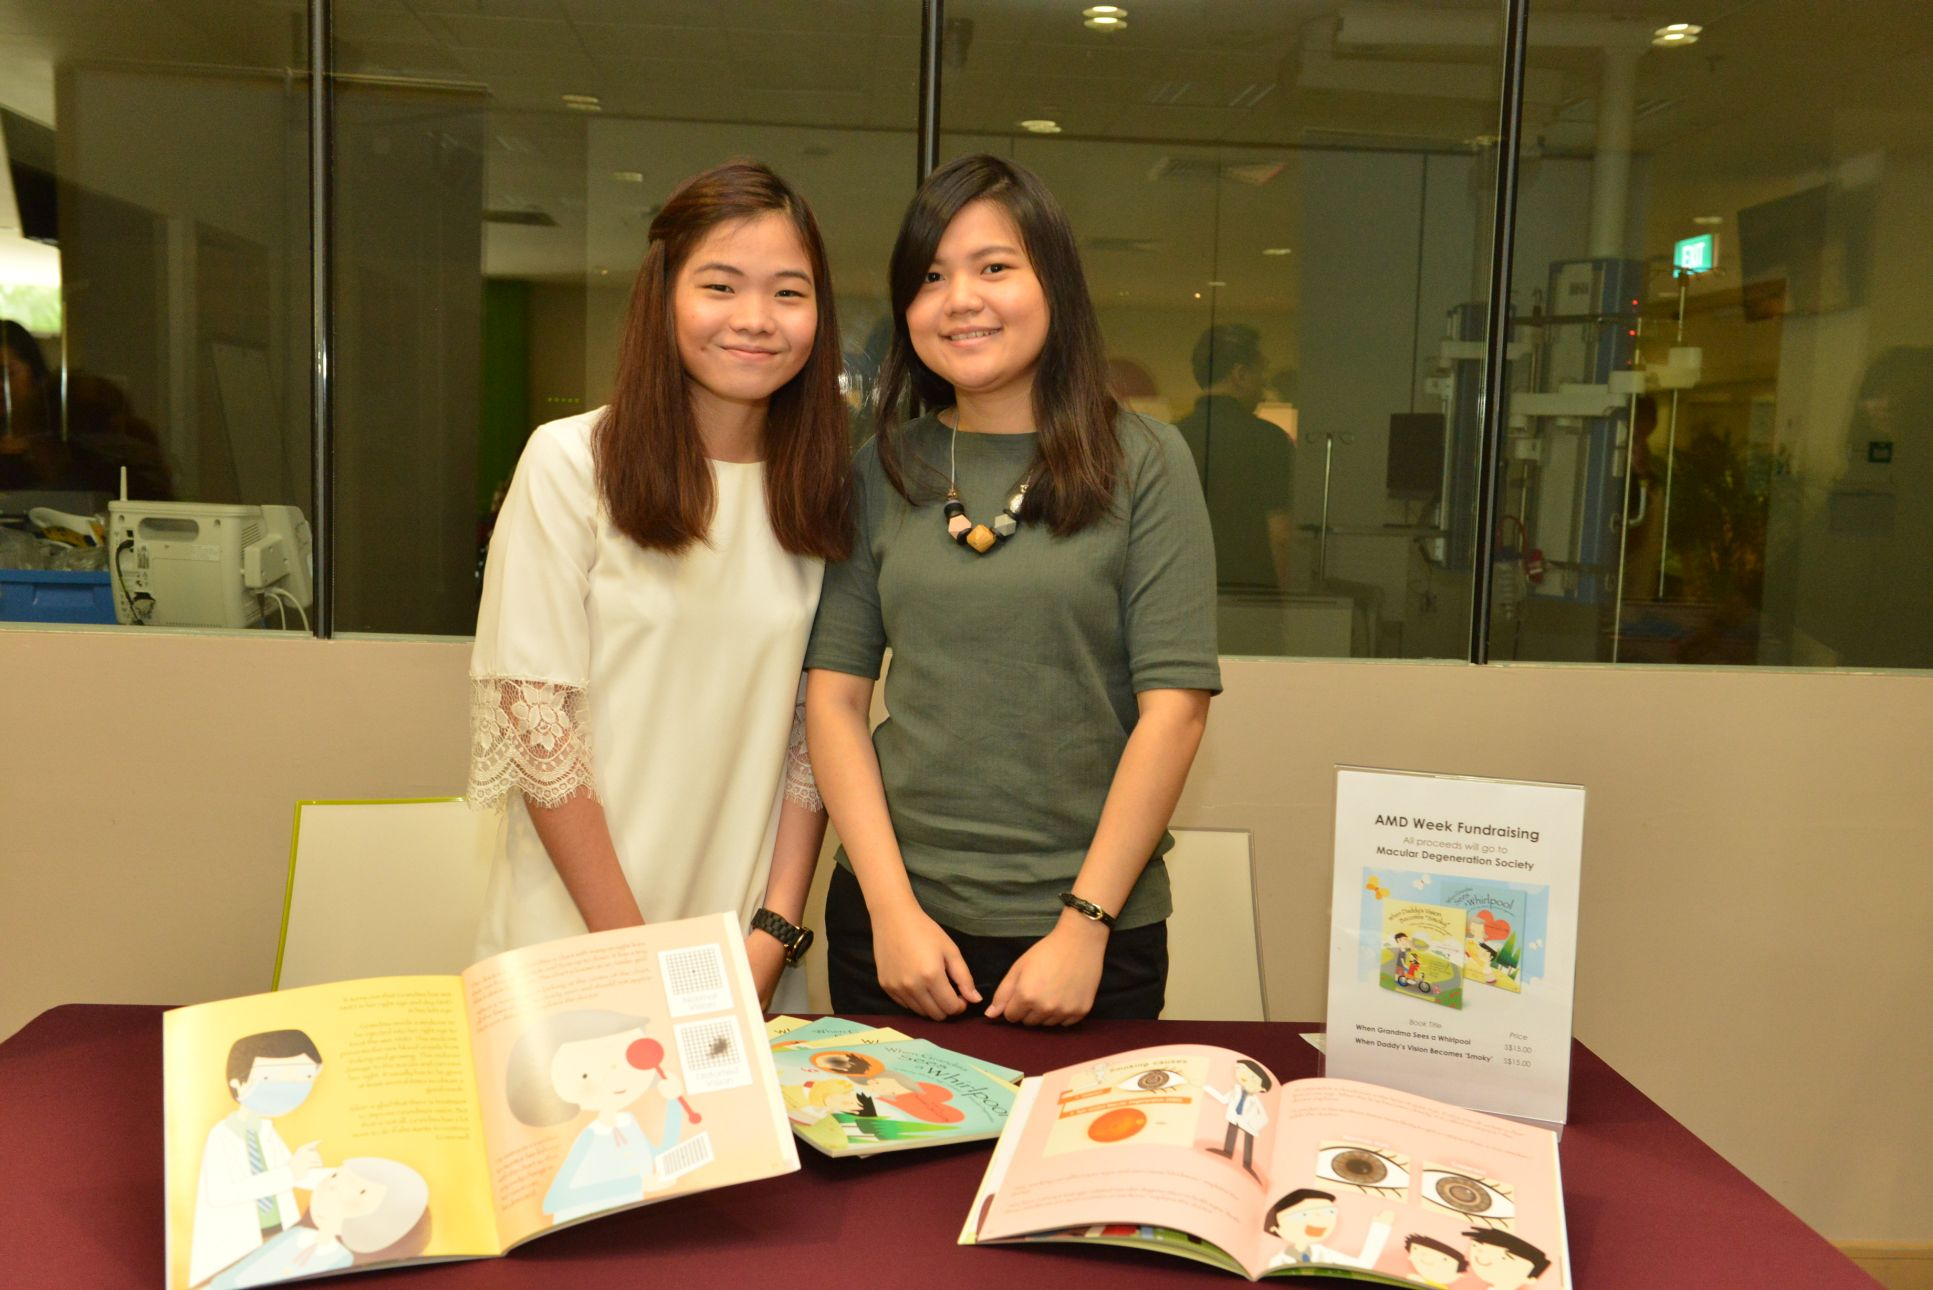 (L-R) Optometrists Ng Shu Yi and Olga Aprianti Lee fund raising for the Macular Degeneration Society at the launch of Awareness of Macular Diseases Week 2017 in Khoo Teck Puat Hospital on 16 September 2017.